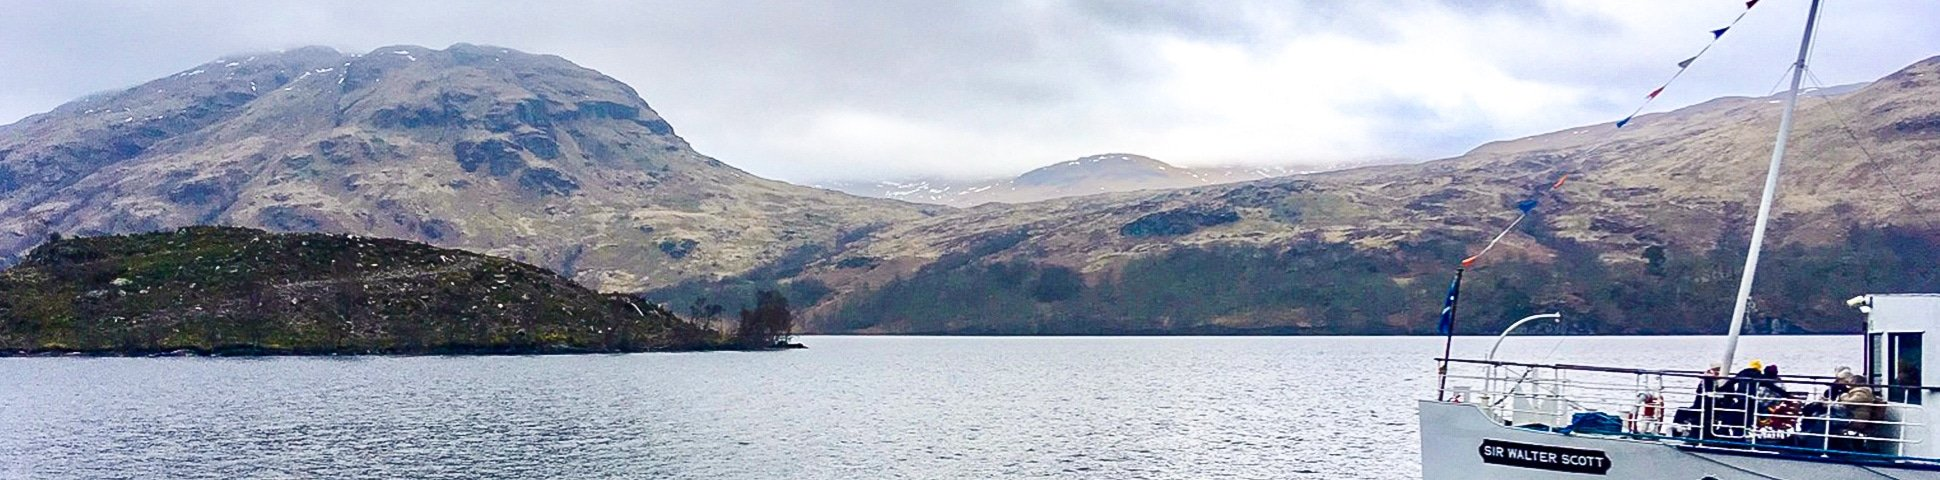 Panorama of The Great Trossachs Path 2 hike in Loch Lomond and The Trossachs area in Scotland